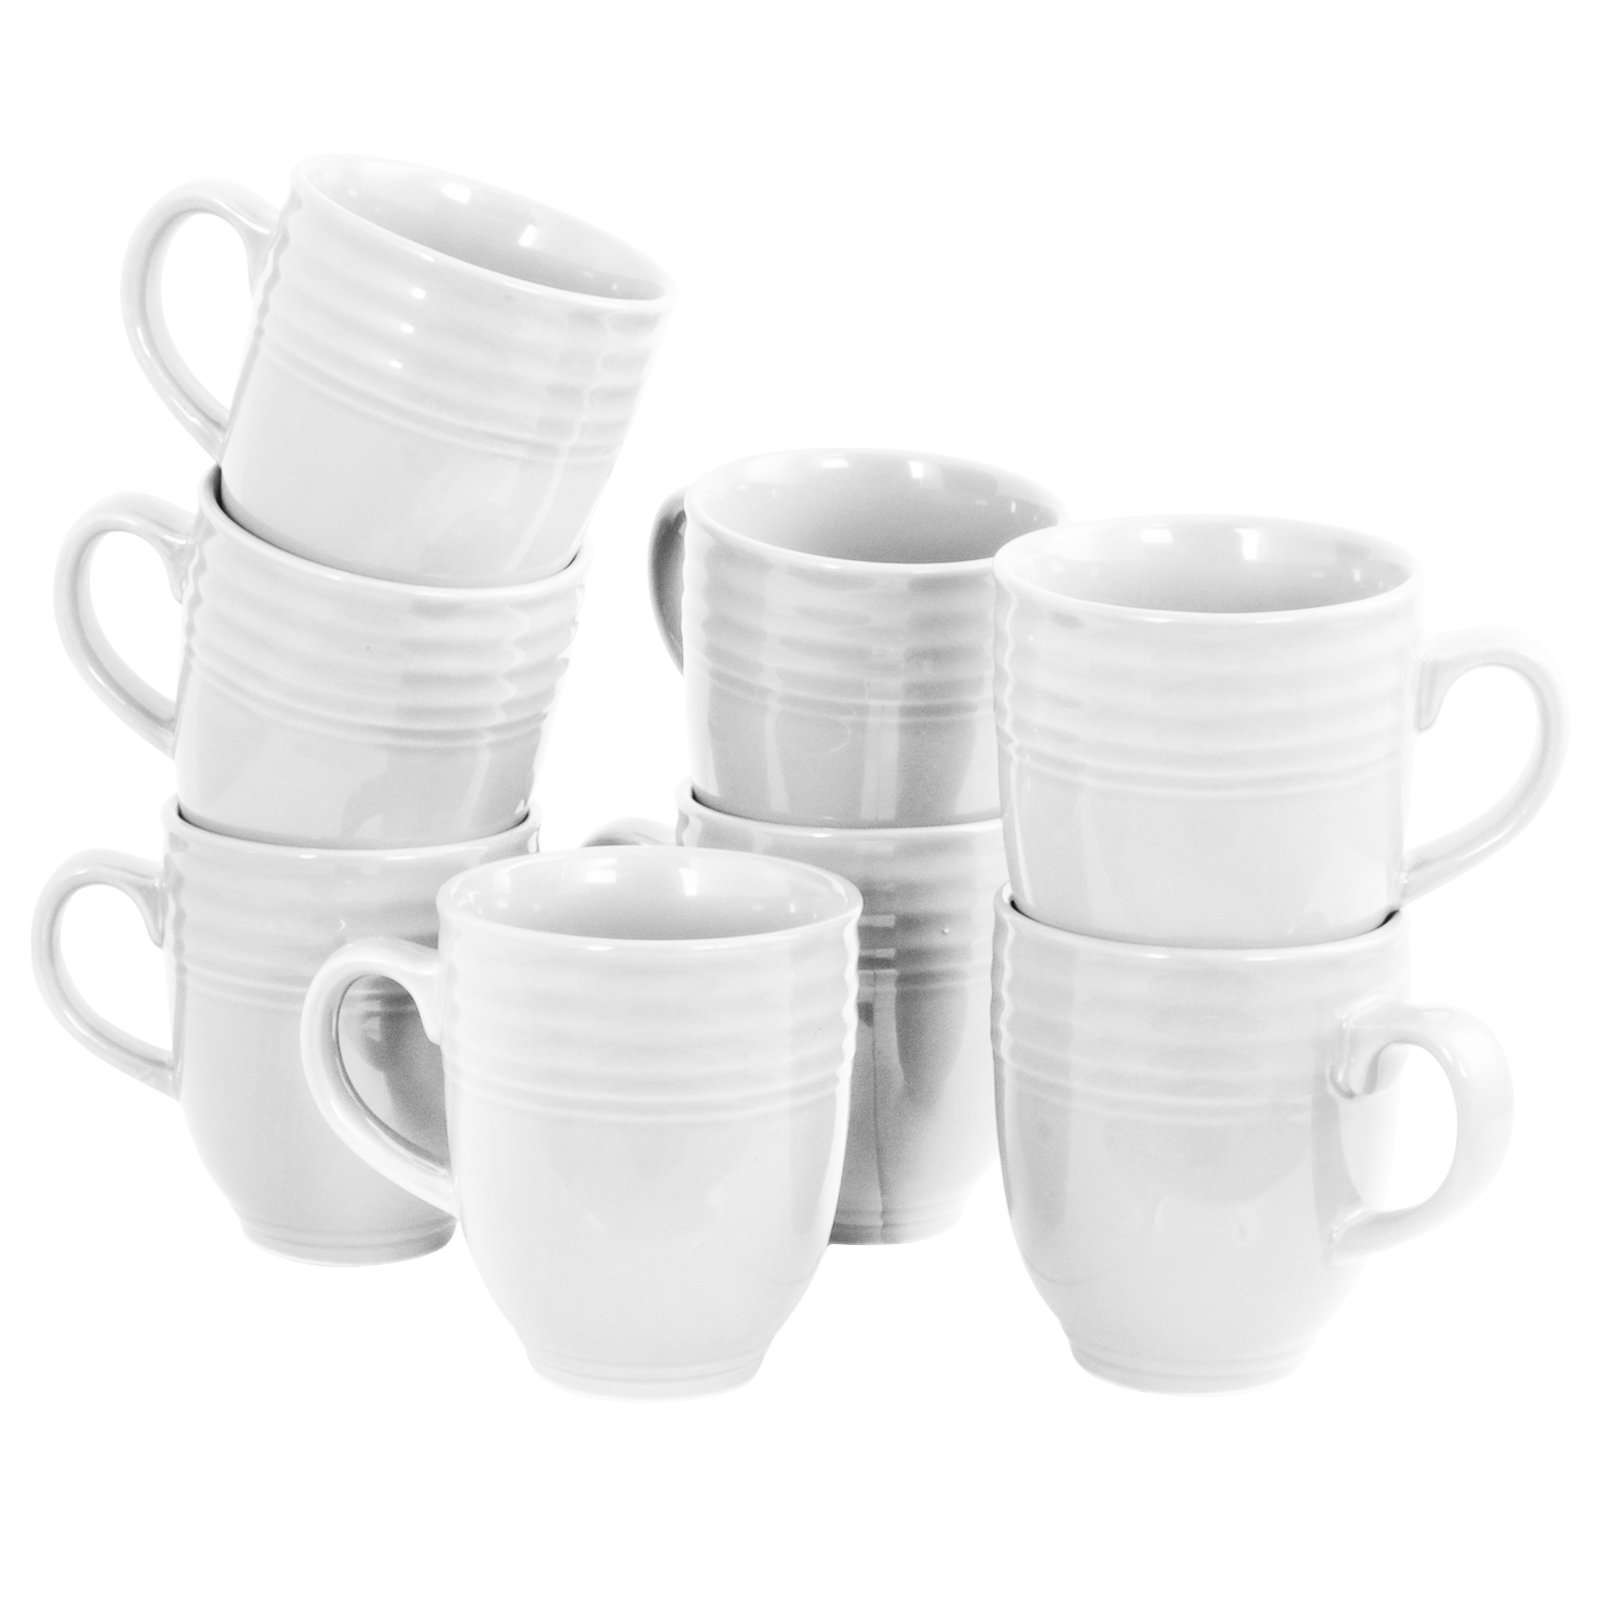 Plaza Cafe 15 oz Mug Set in White, Set of 8